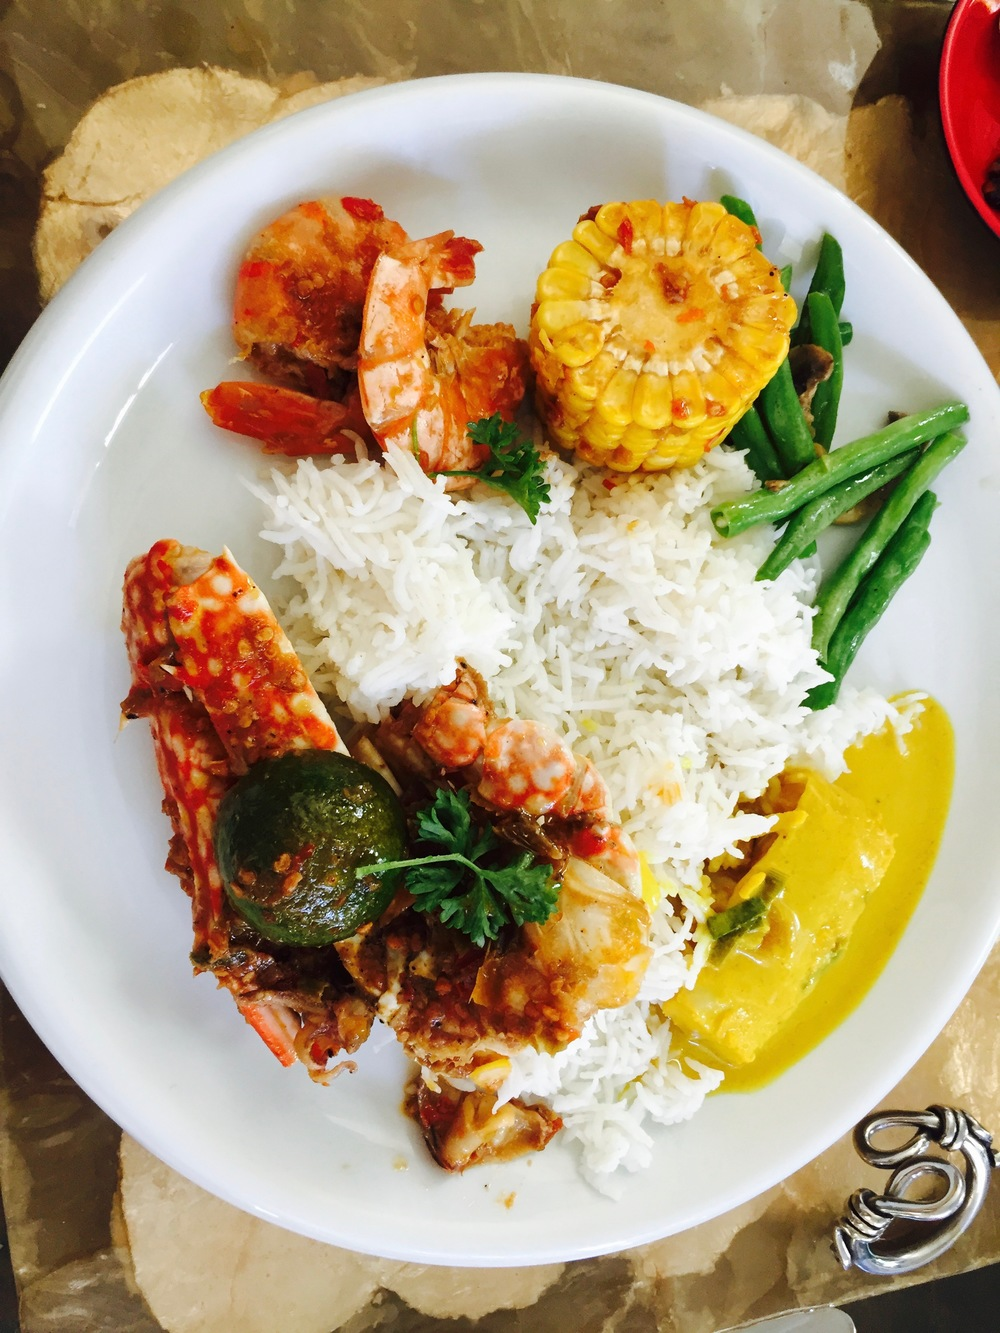 My yummy plate of spicy seafood goodness teamed with Gulai Lemak (coconut stew) and Sauteed French Beans as an accompaniment